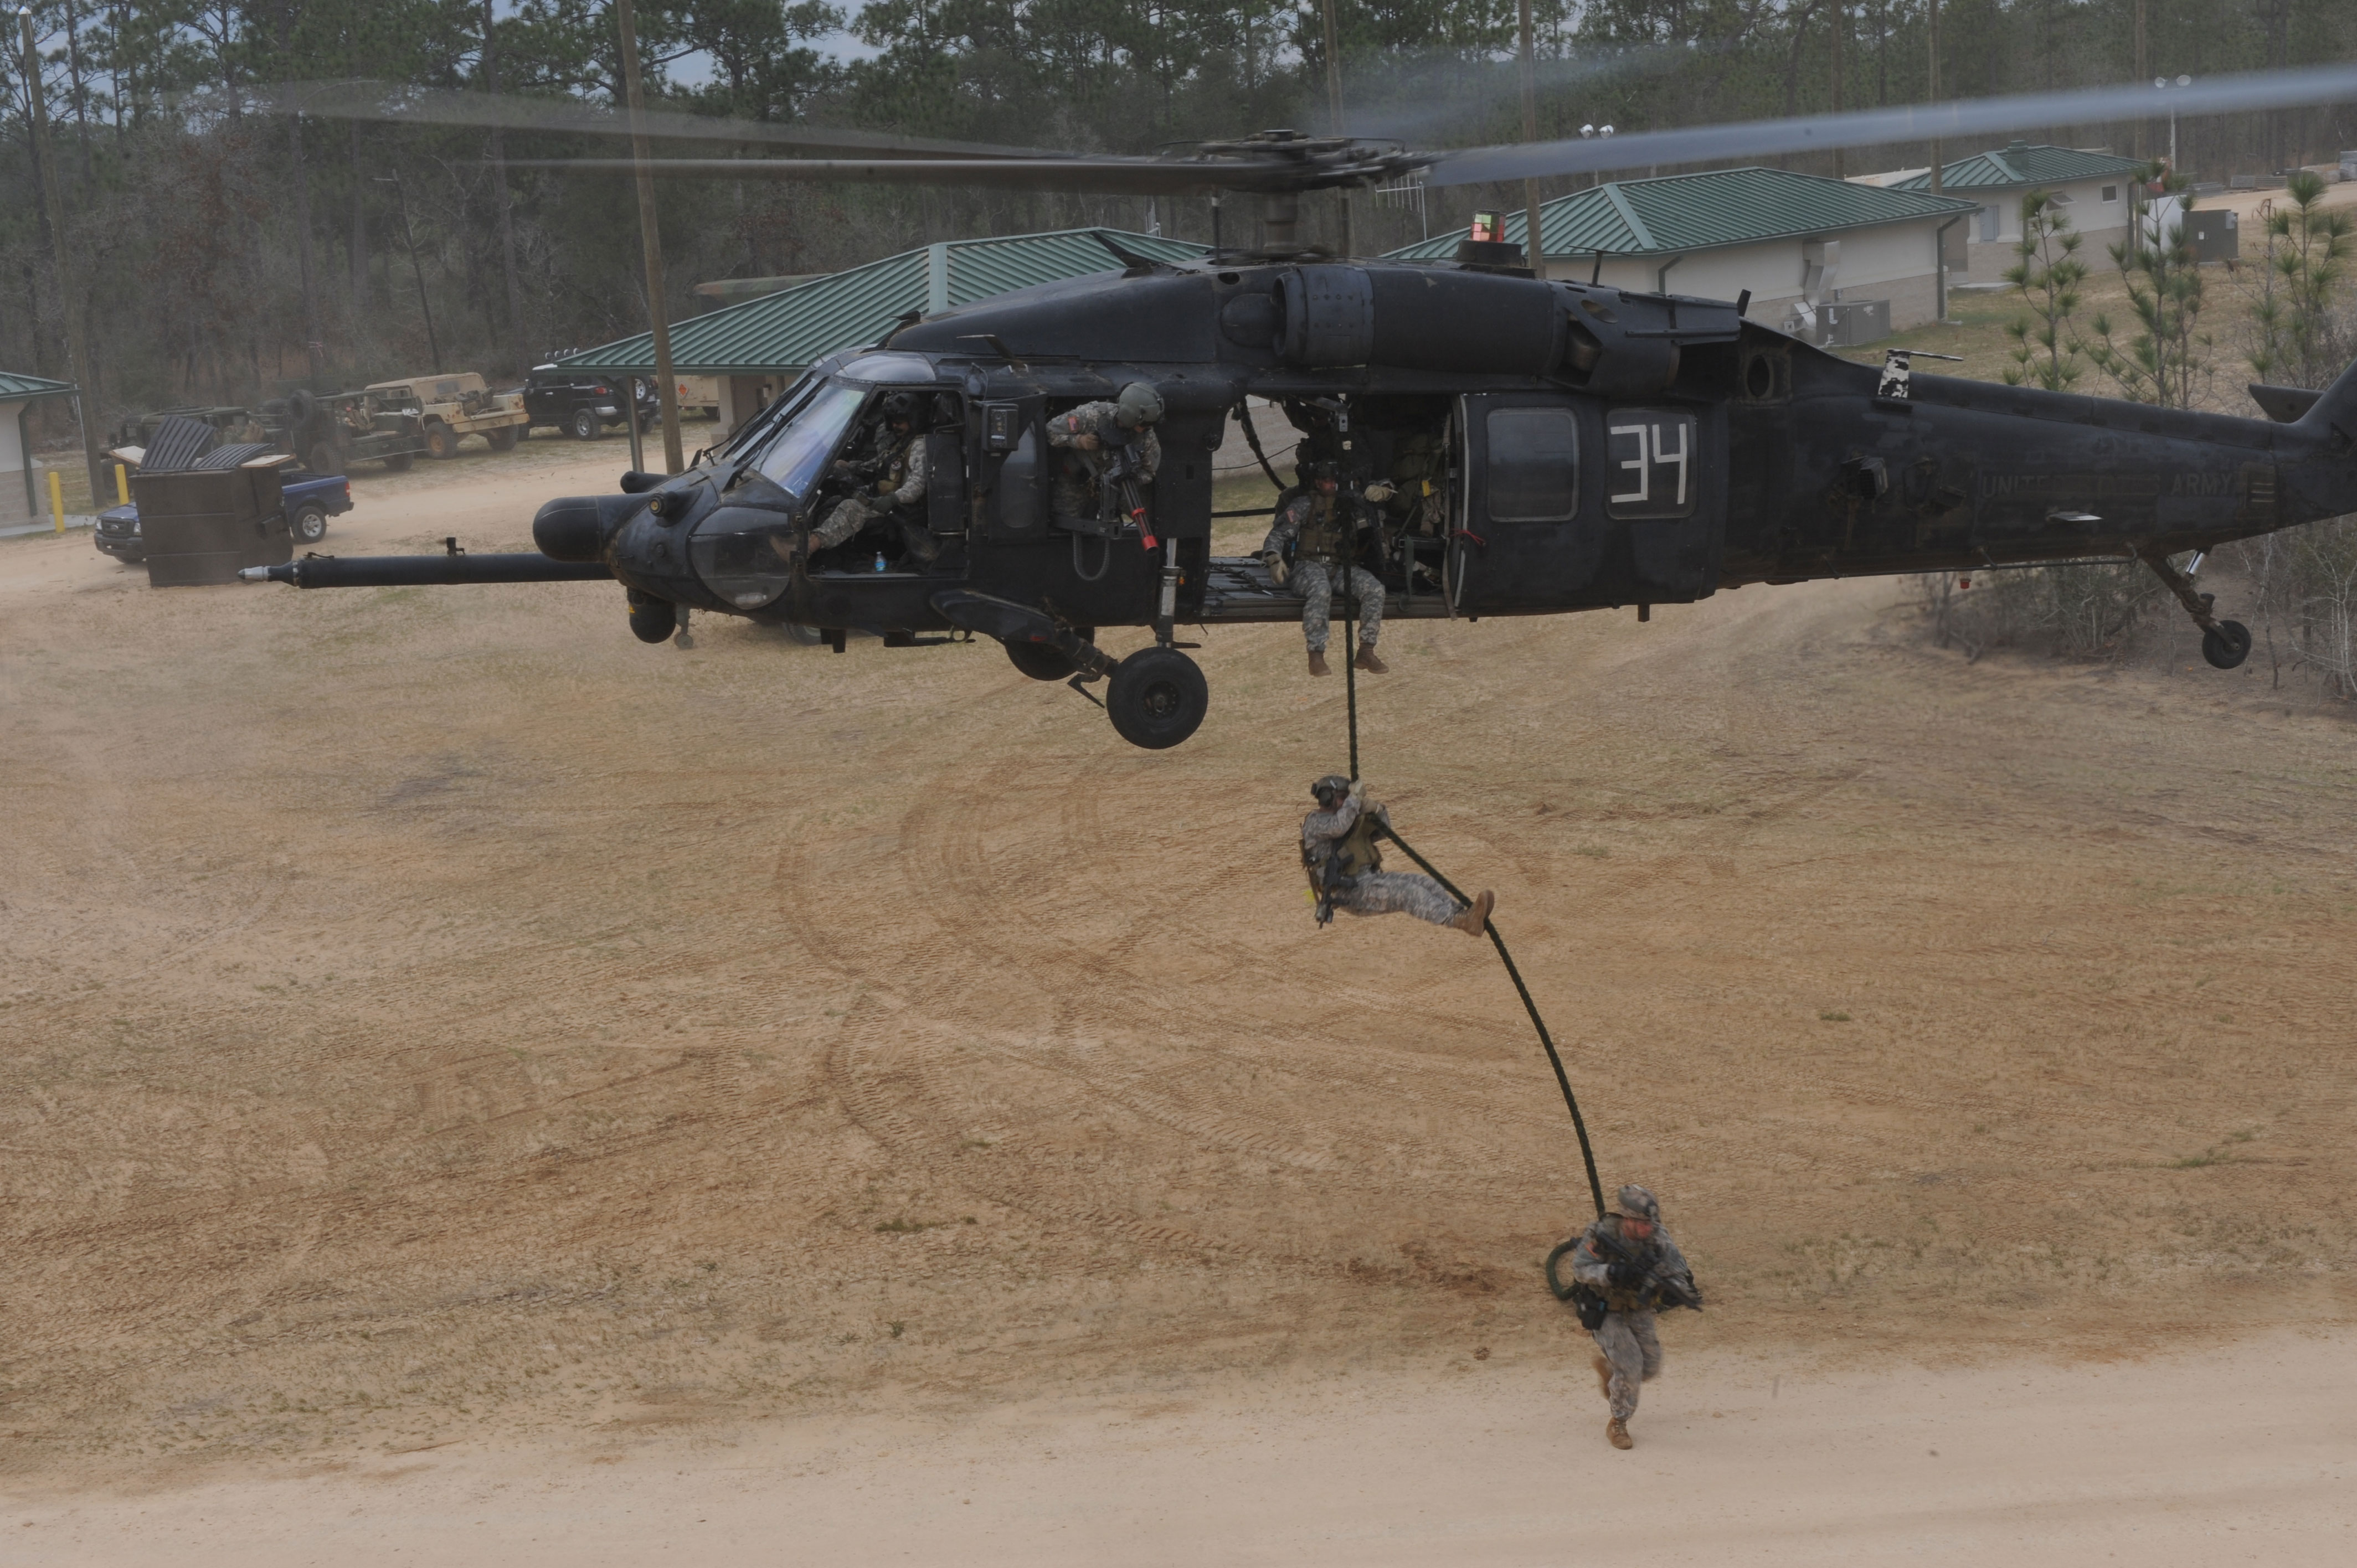 picture of a blackhawk helicopter with Mh 60 Black Hawk Helicopter on Watch furthermore Sikorsky HH 60 Pave Hawk together with Mexicos Drug War Numbers Infographic additionally Blackhawk Helicopter Silhouette also Boeing CH 47 Chinook.